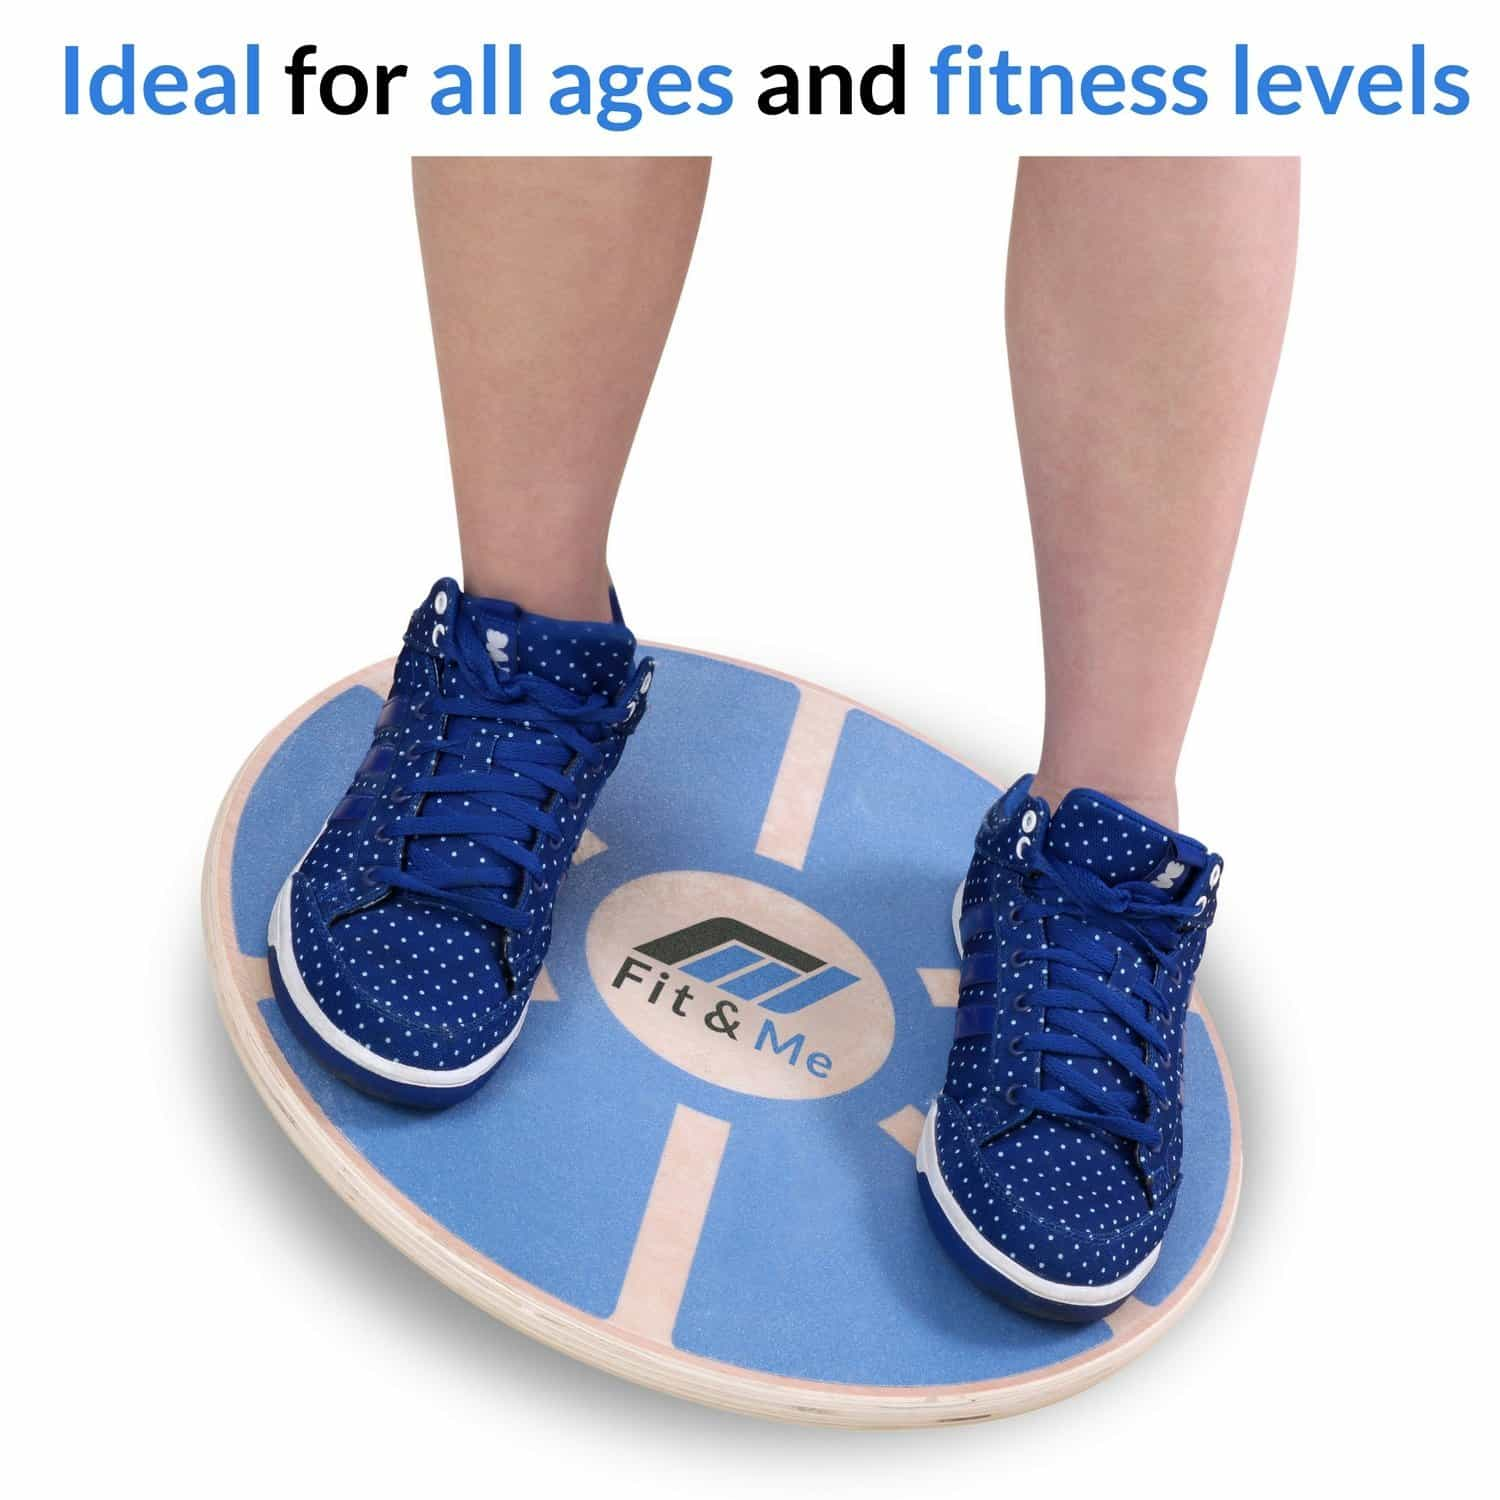 Ideal for all ages